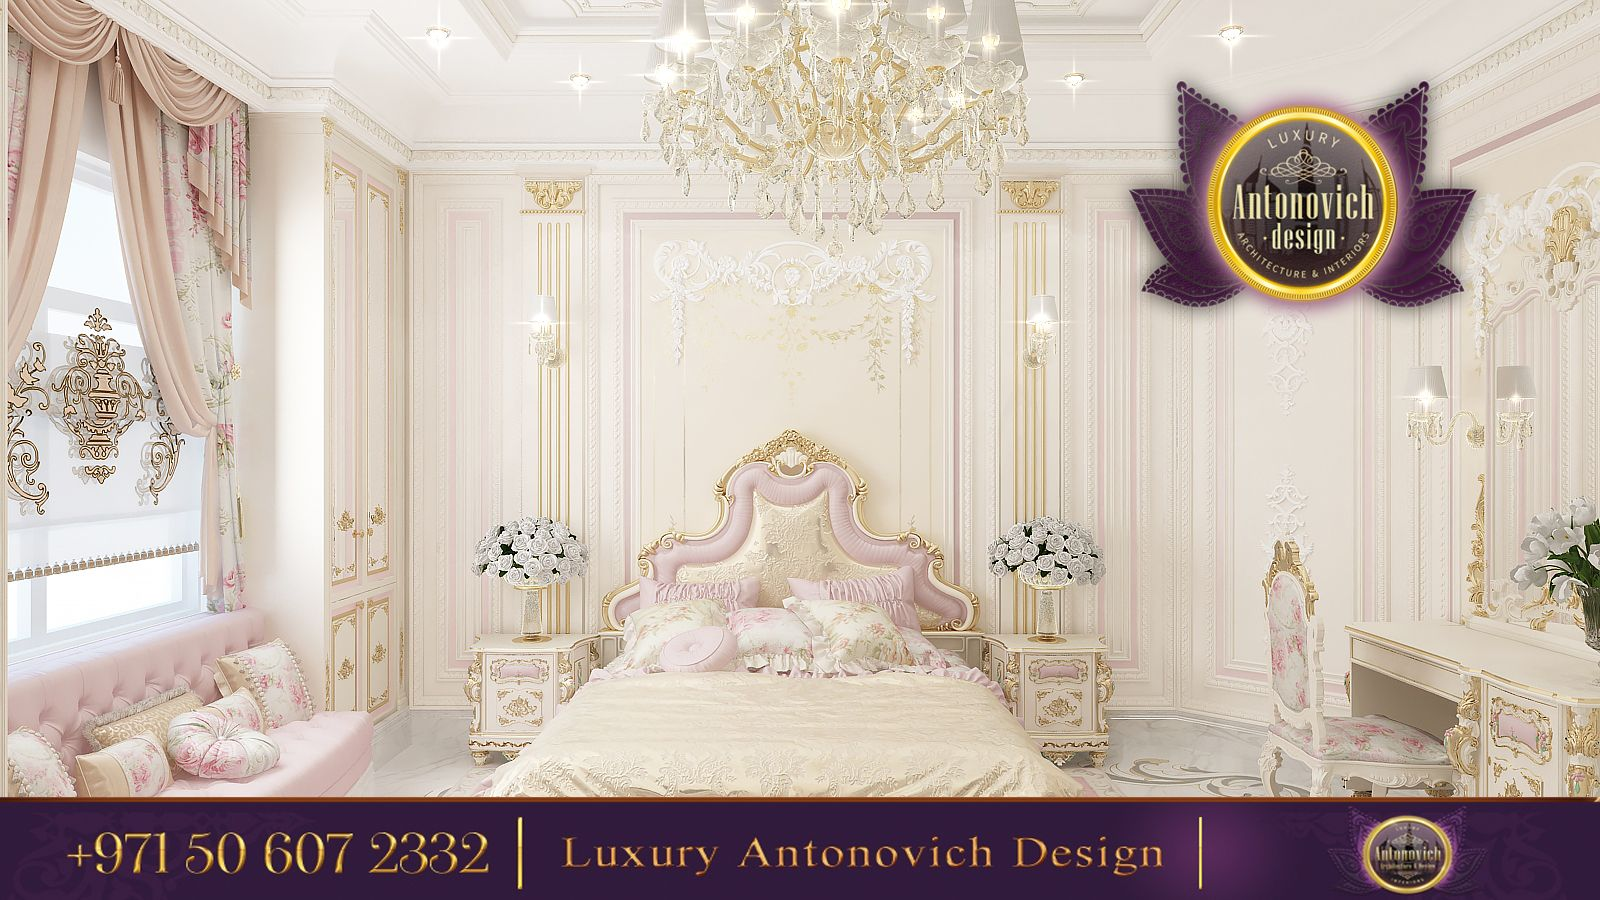 Premium bedroom interior design!🌟🌟🌟 From idea to realization!!! Contact us at the moment!📞📞📞 For more inspirational ideas take a look at: http://www.antonovich-design.ae/ Call us +971 50 607 2332 #antonovichdesign, #design, #dubaistyle, #dubai2020, #homestyle, #abudhabi, #homedecor, #housestyle, #bedroom